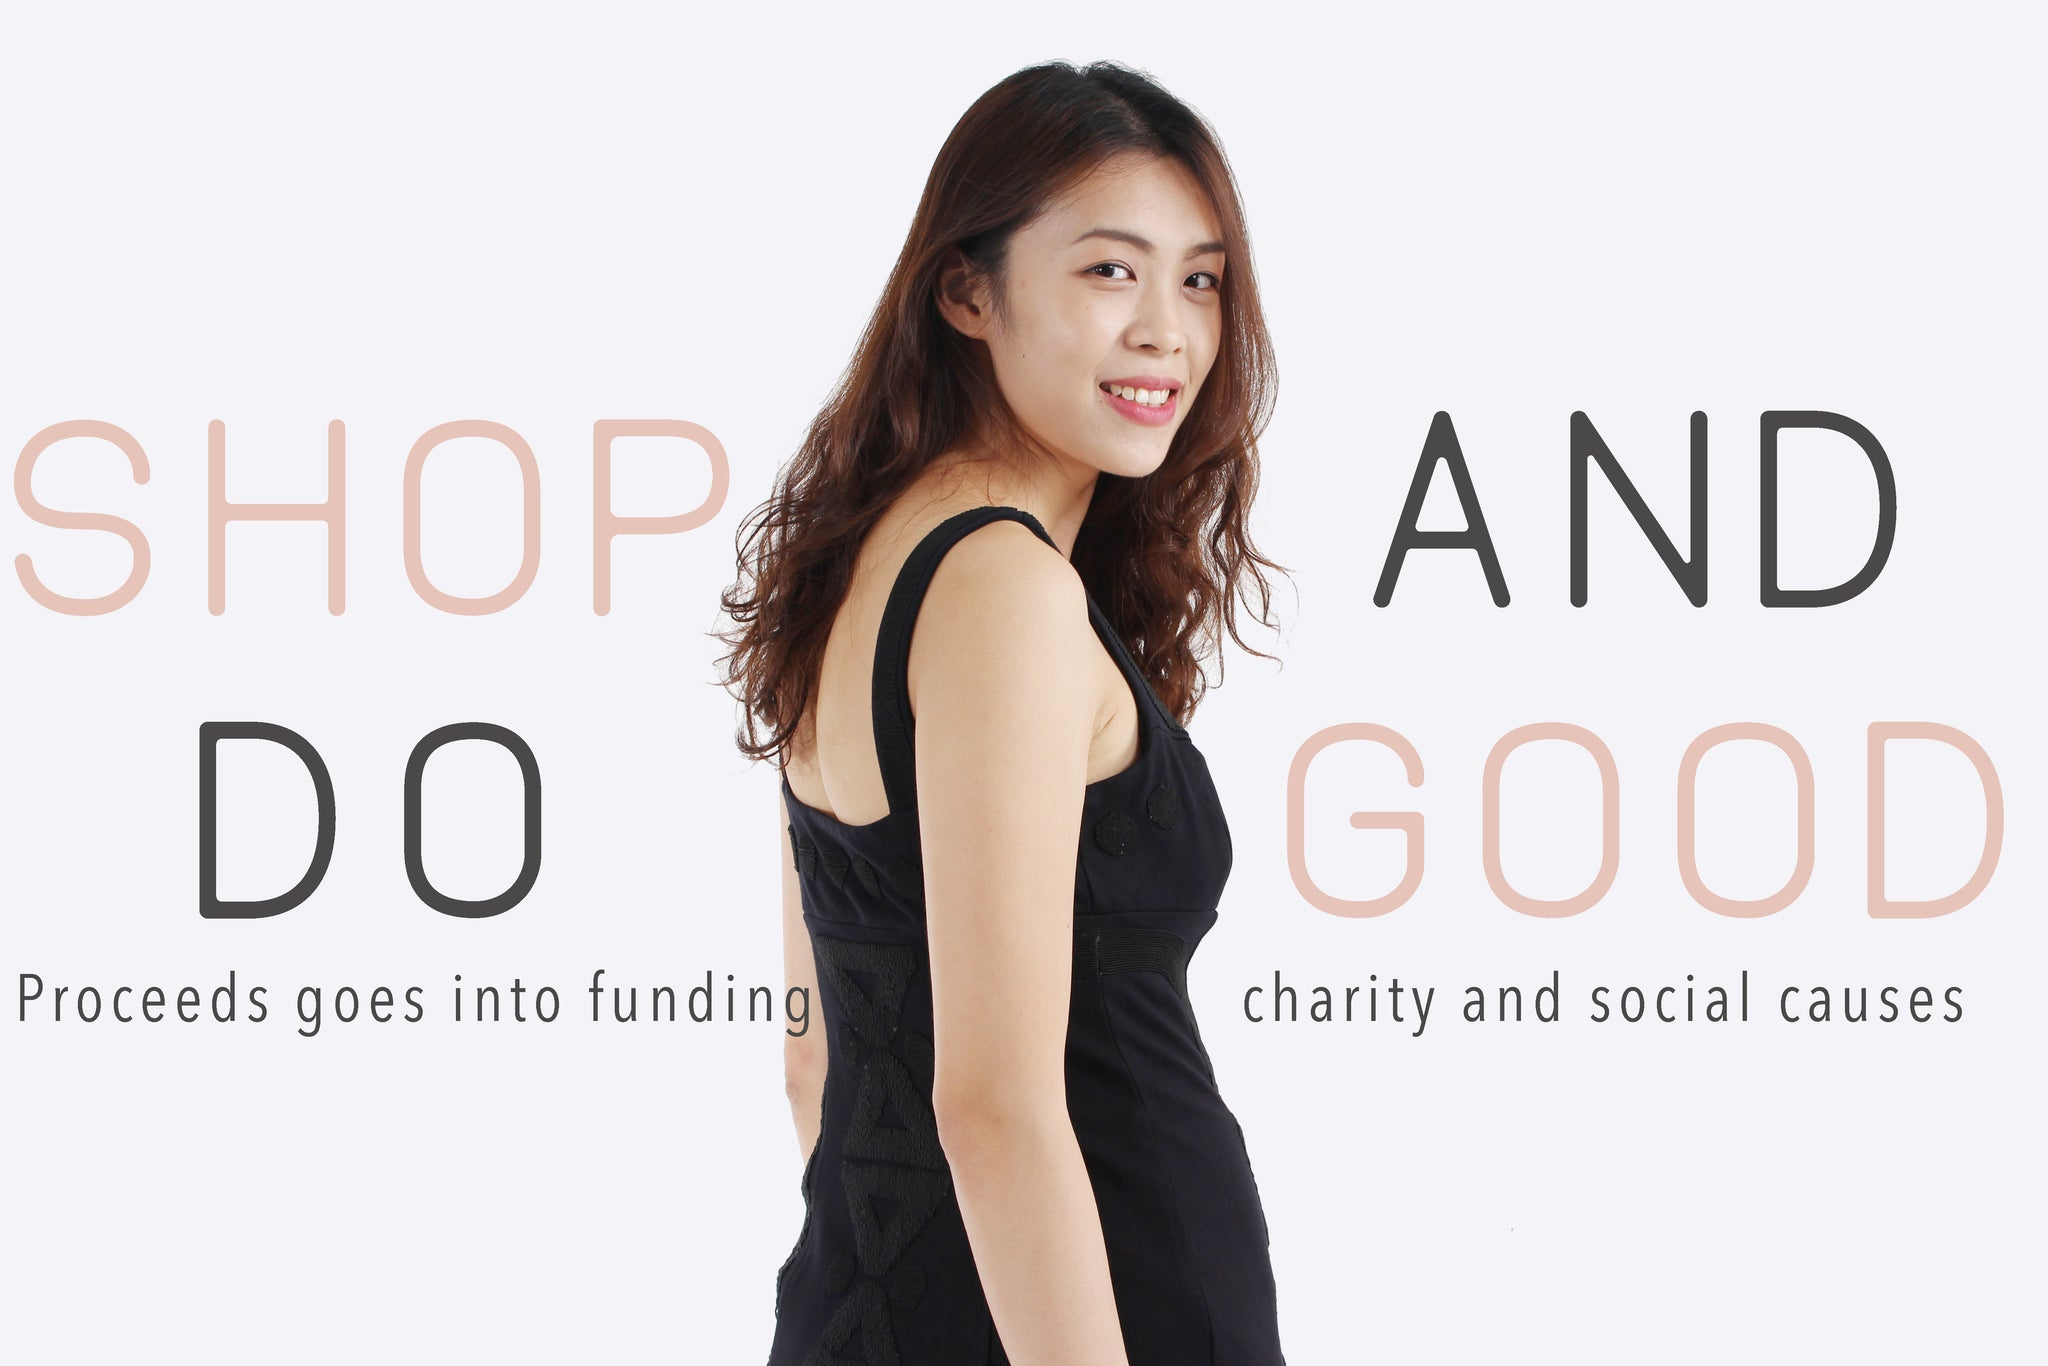 Shop and do good